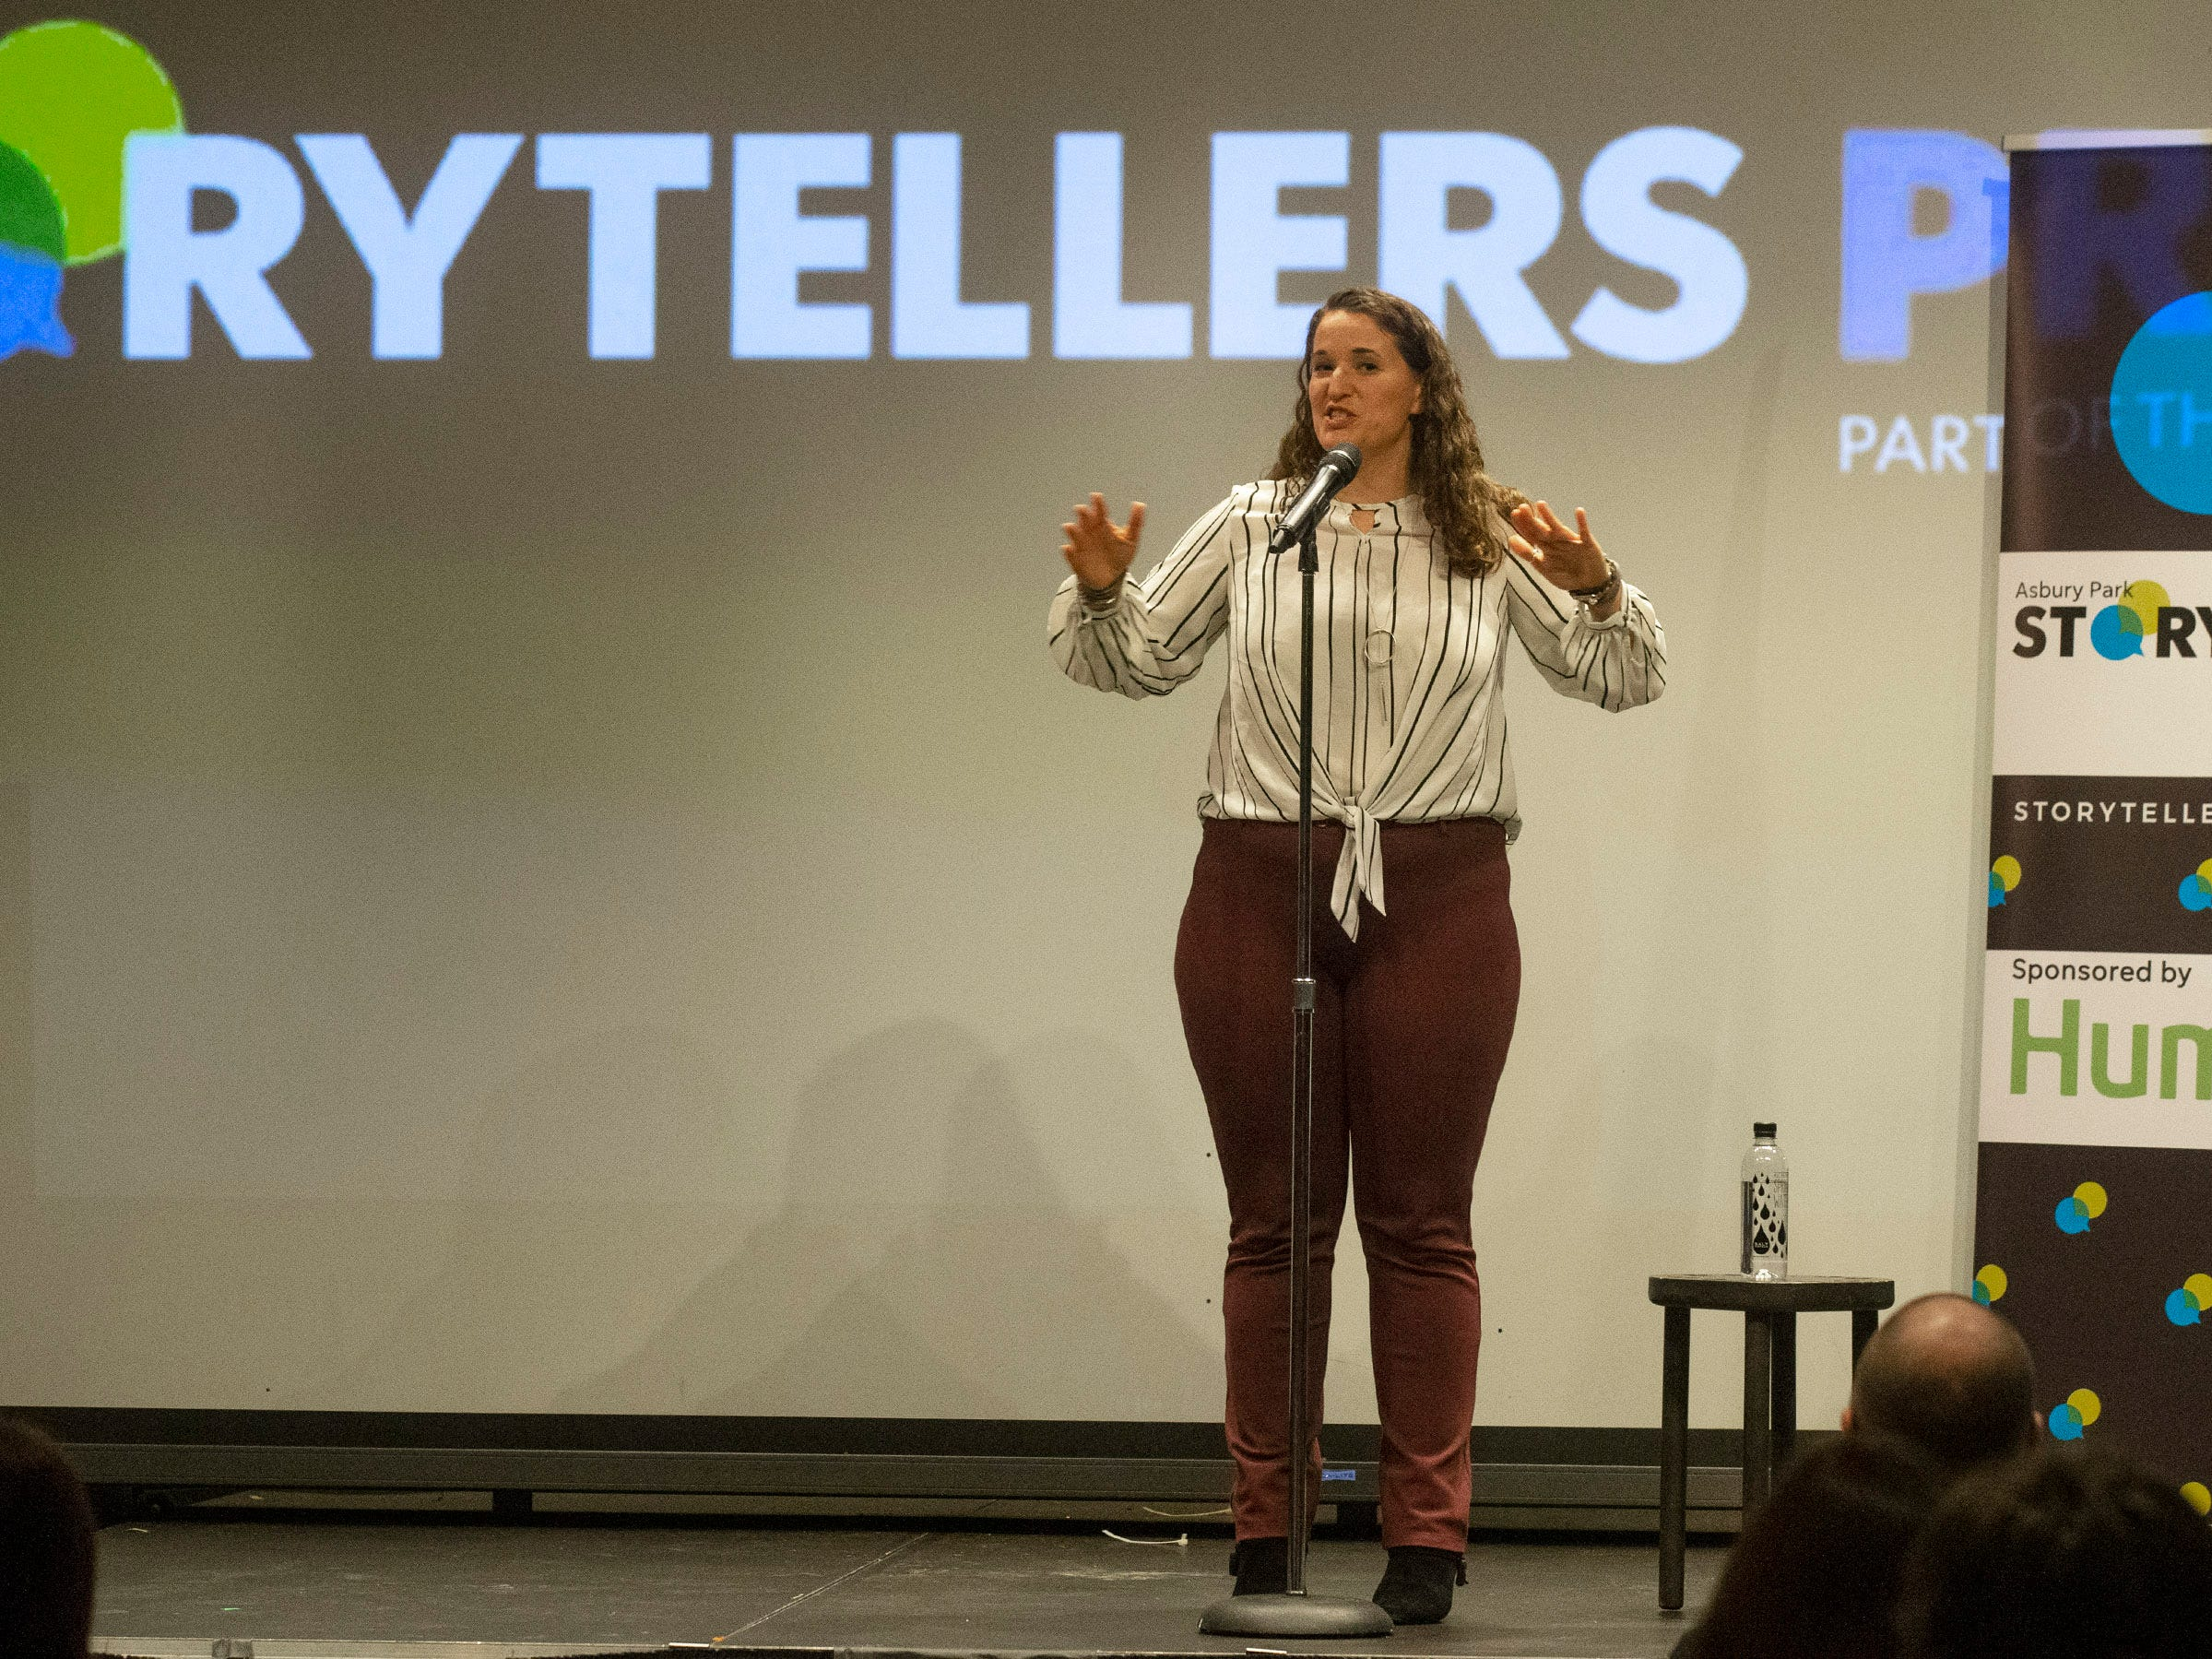 Susanne Cervenka tells her story.  Speakers and crowds alike enjoy the latest version of Storytellers in Asbury Park on February 27, 2019, this night's subject was starting over.